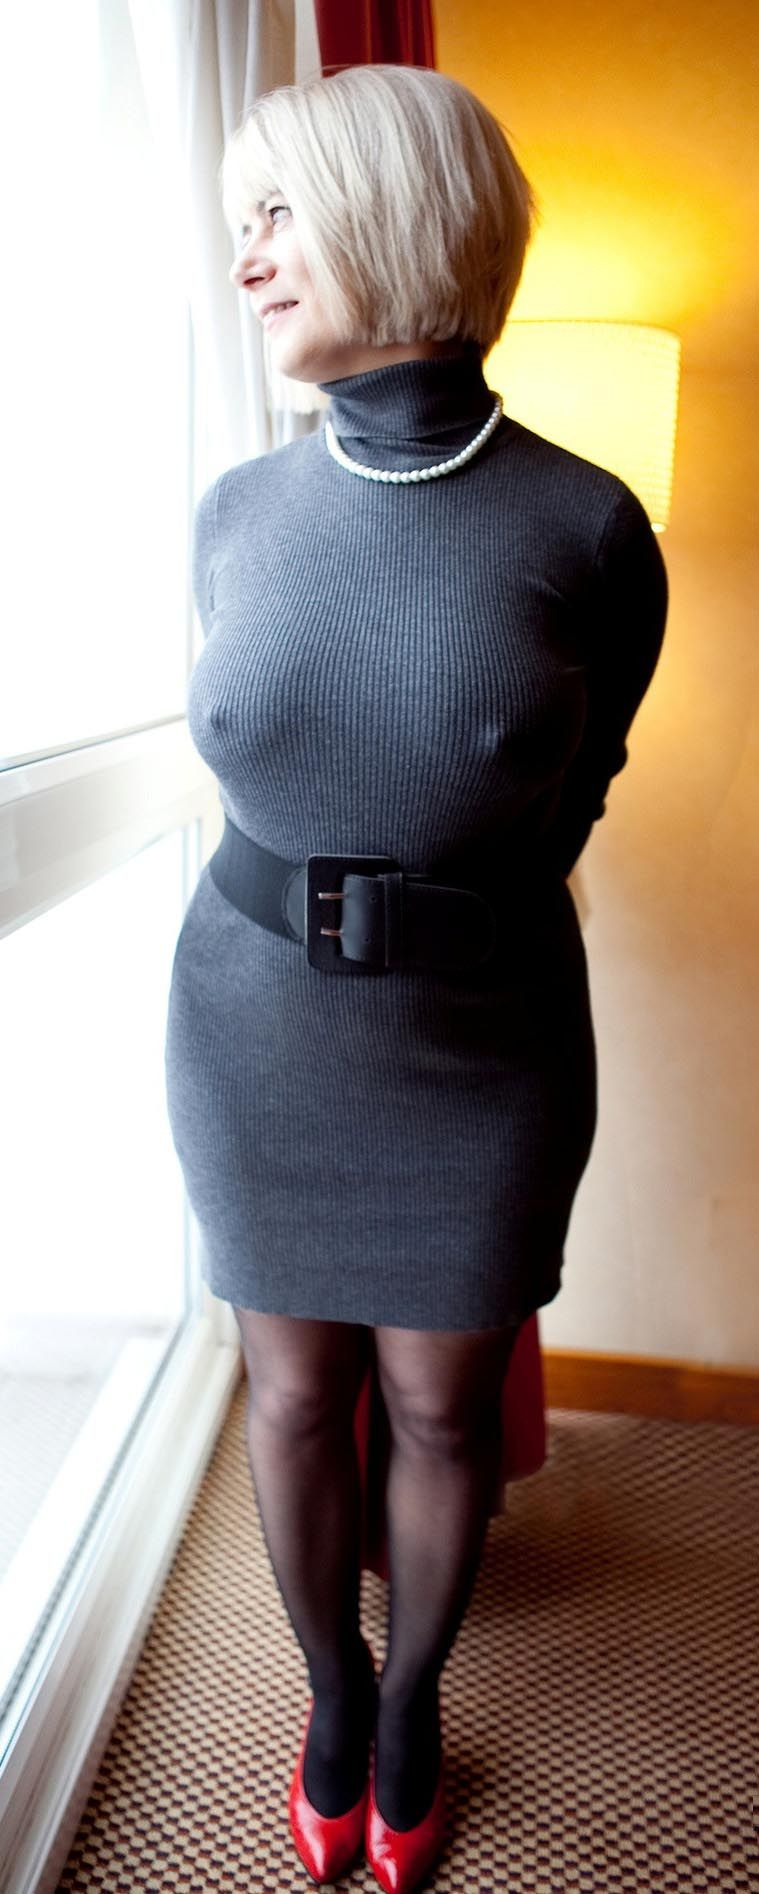 on dress mini milf knit sweater